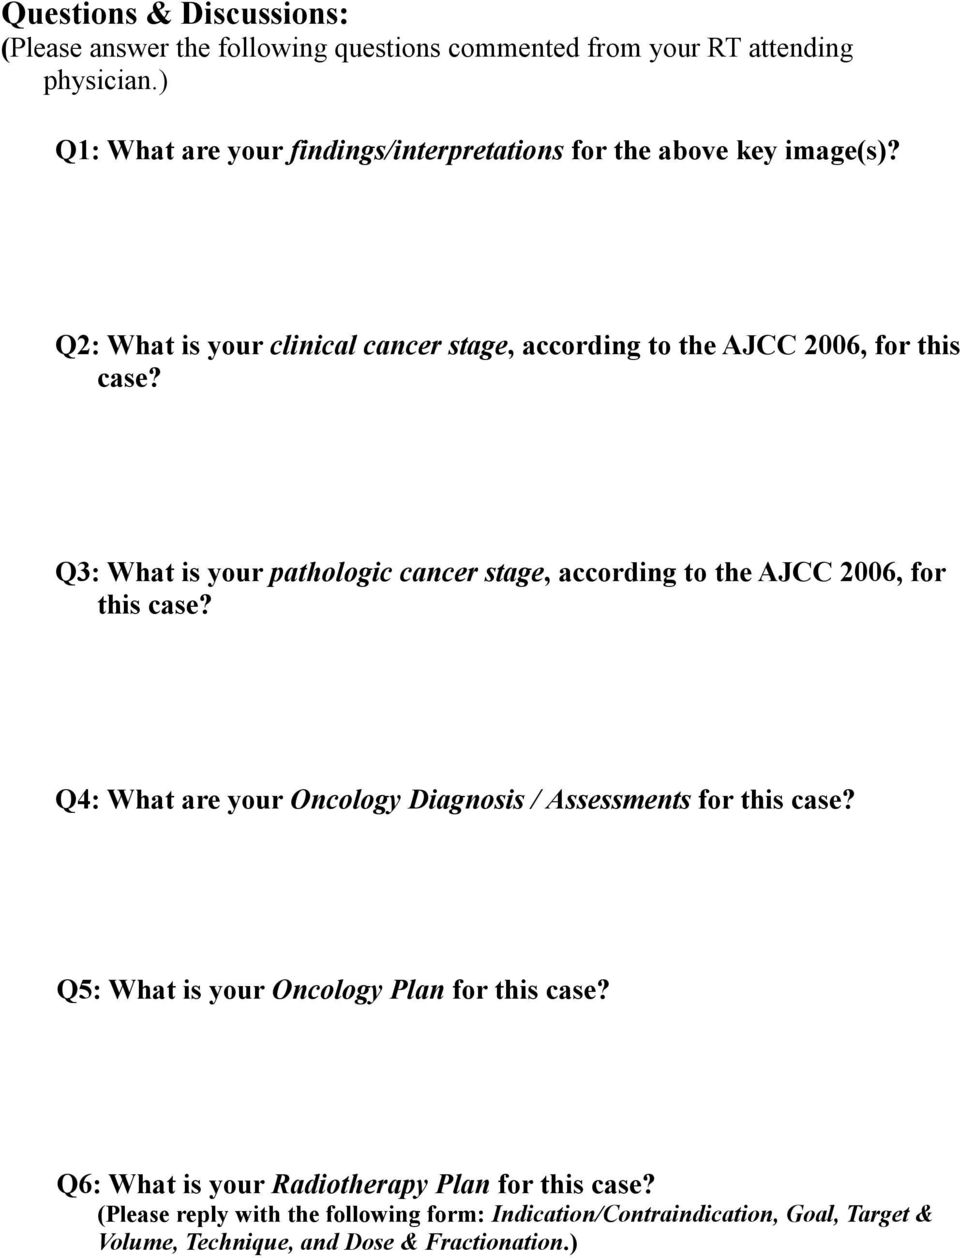 Q3: What is your pathologic cancer stage, according to the AJCC 2006, for this case? Q4: What are your Oncology Diagnosis / Assessments for this case?